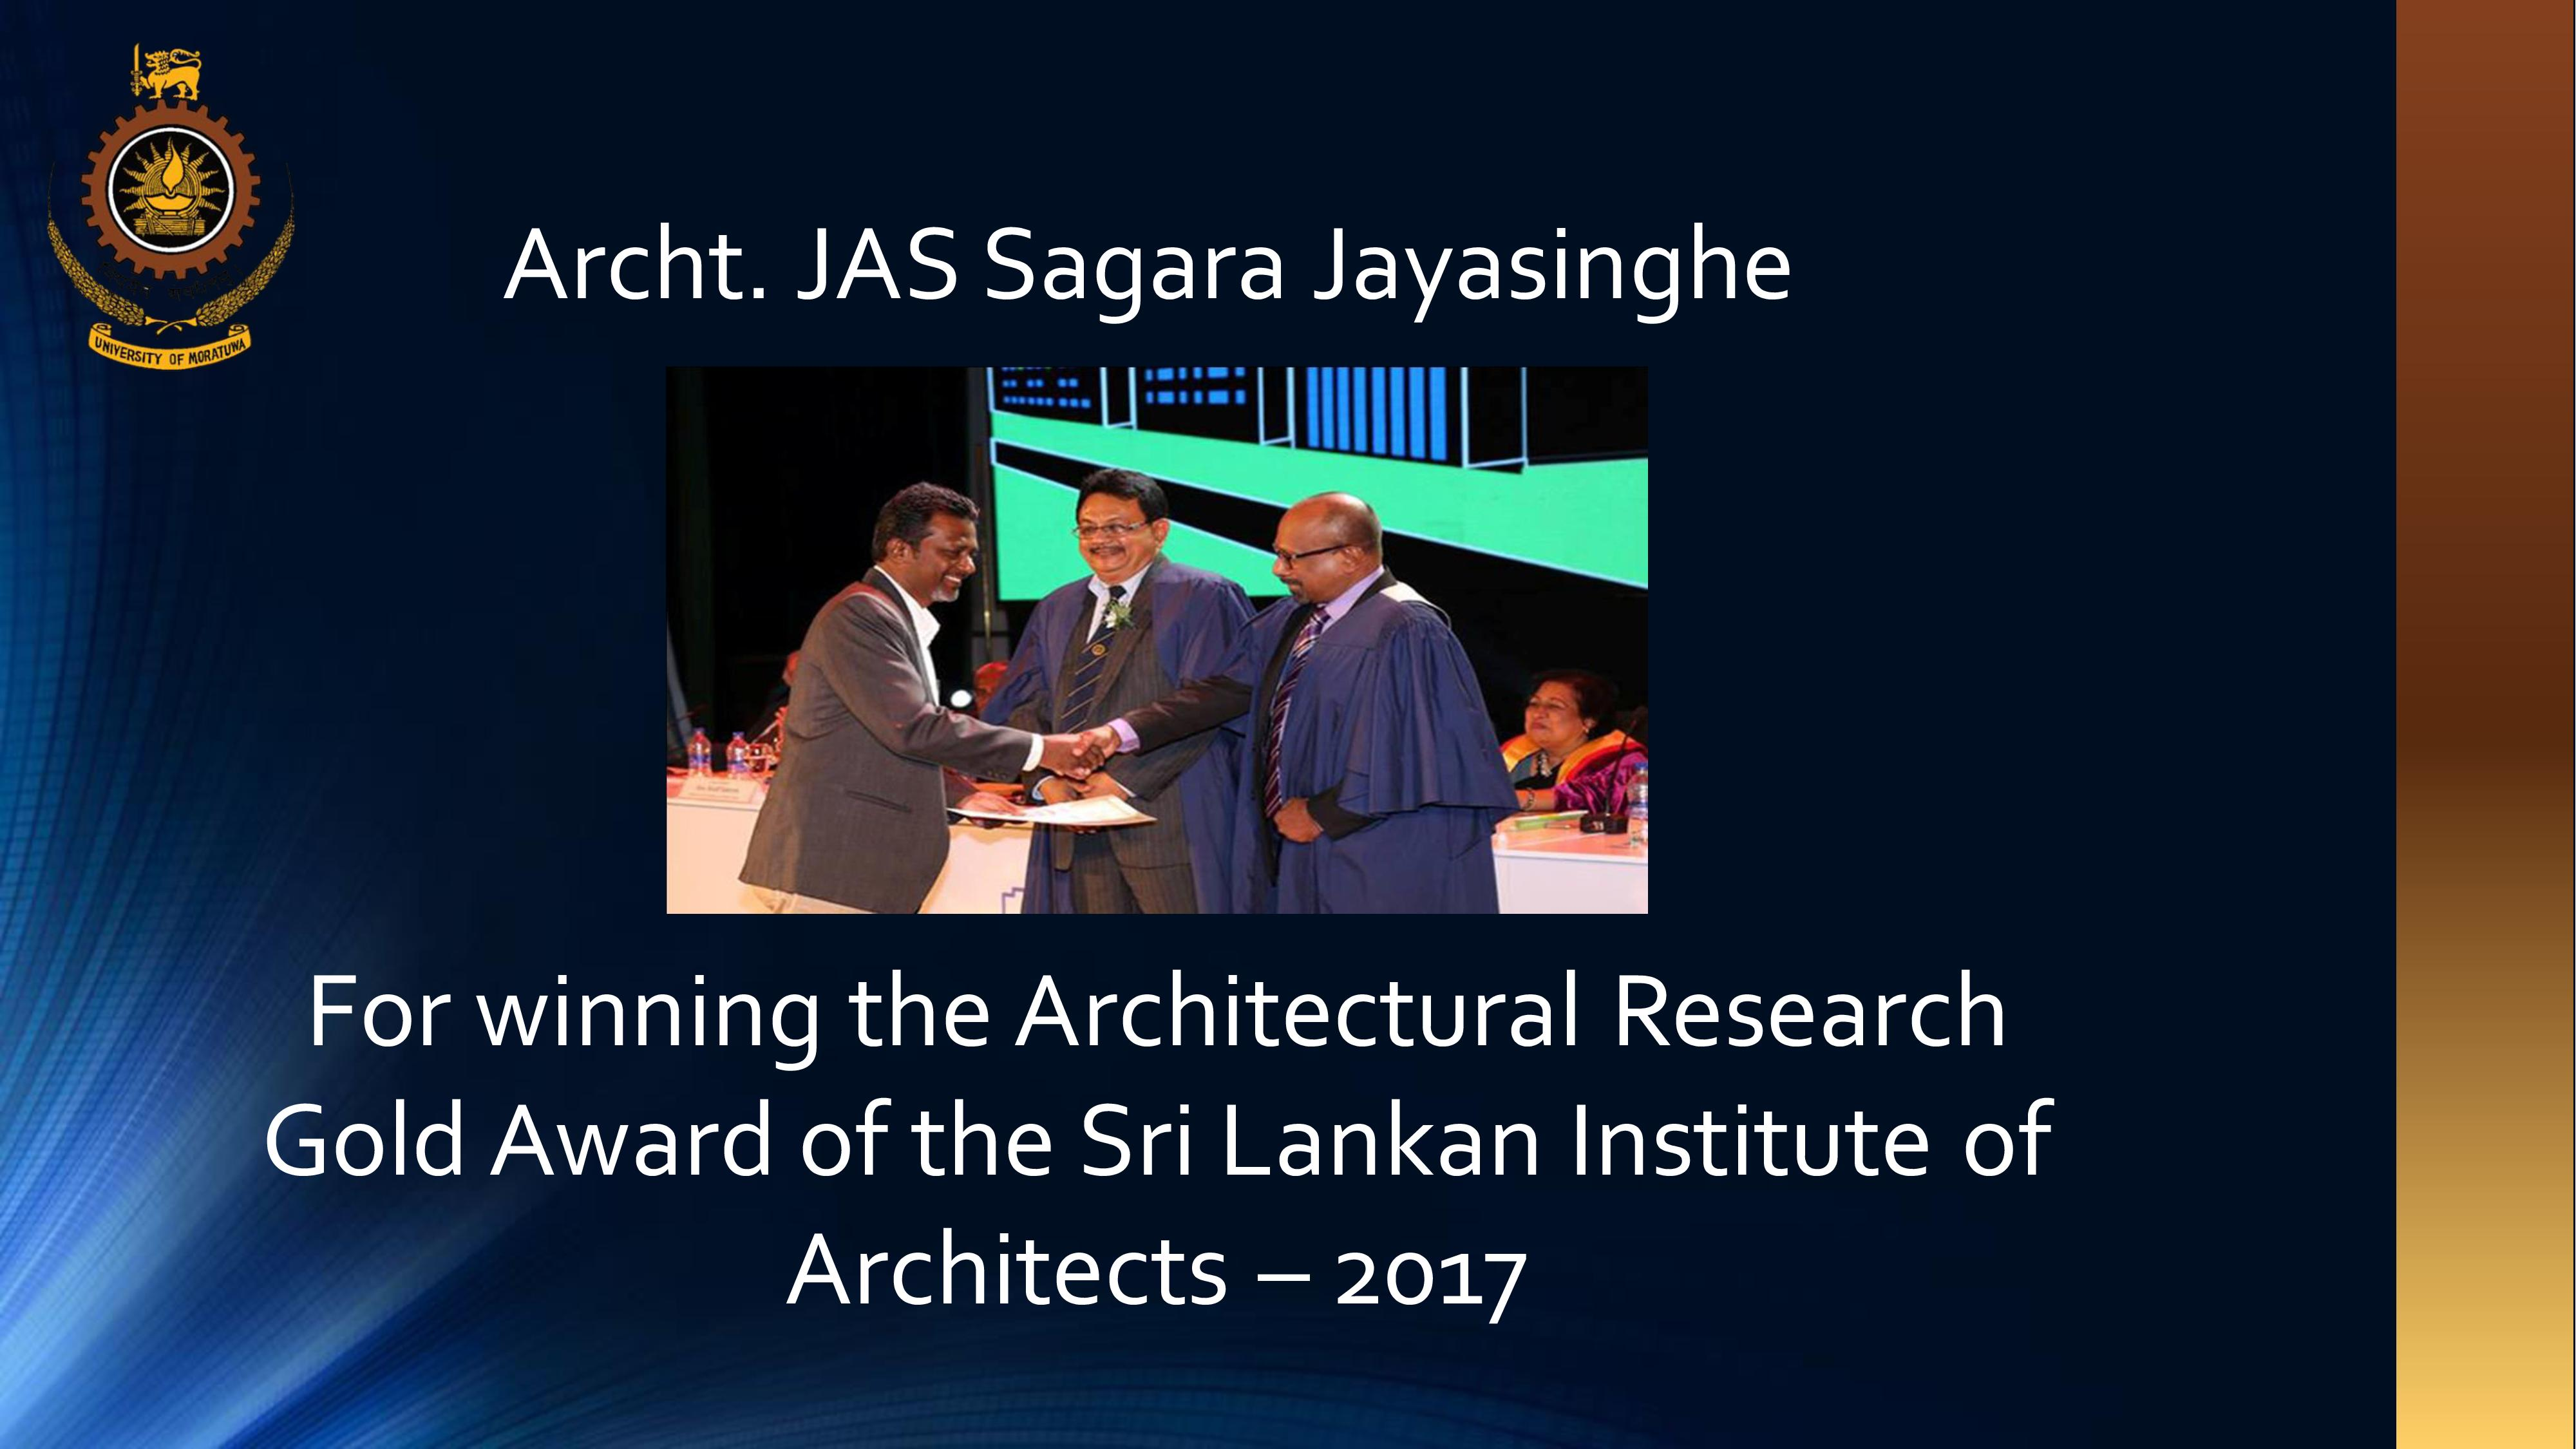 Winner of the Architectural Research Gold Award of SLIA 2017